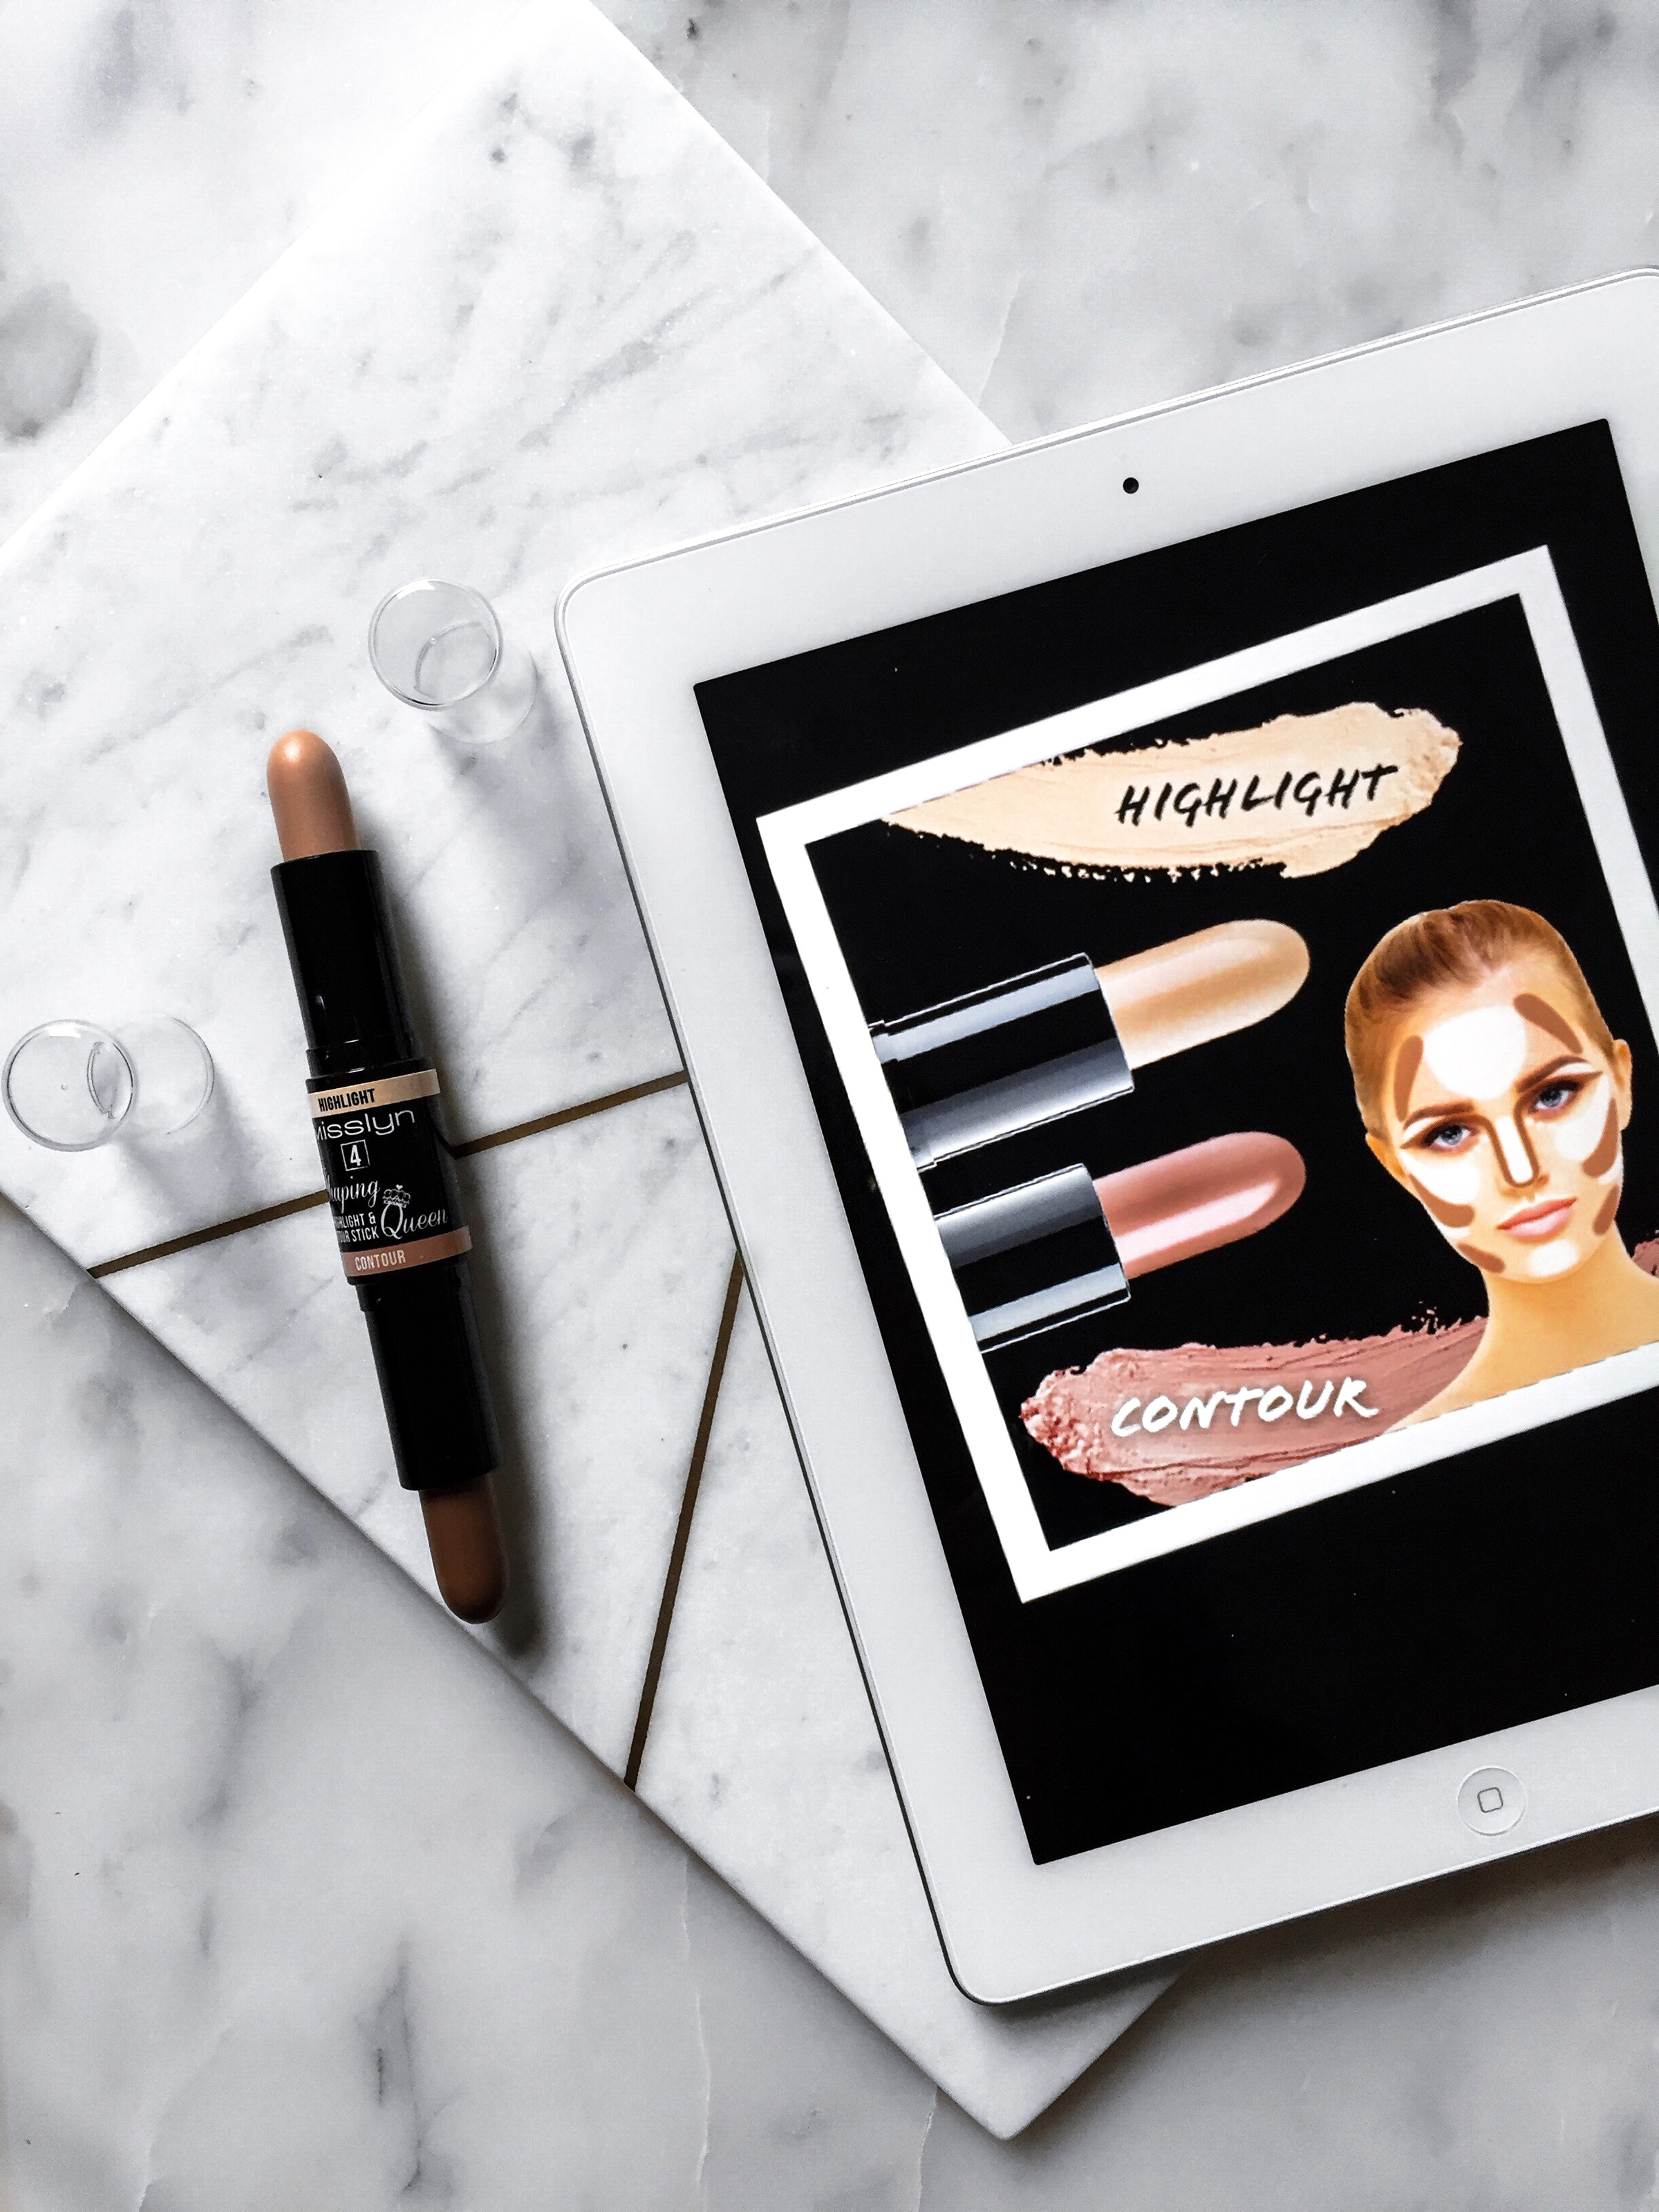 blogger_boxx_misslyn_highlight_contouring